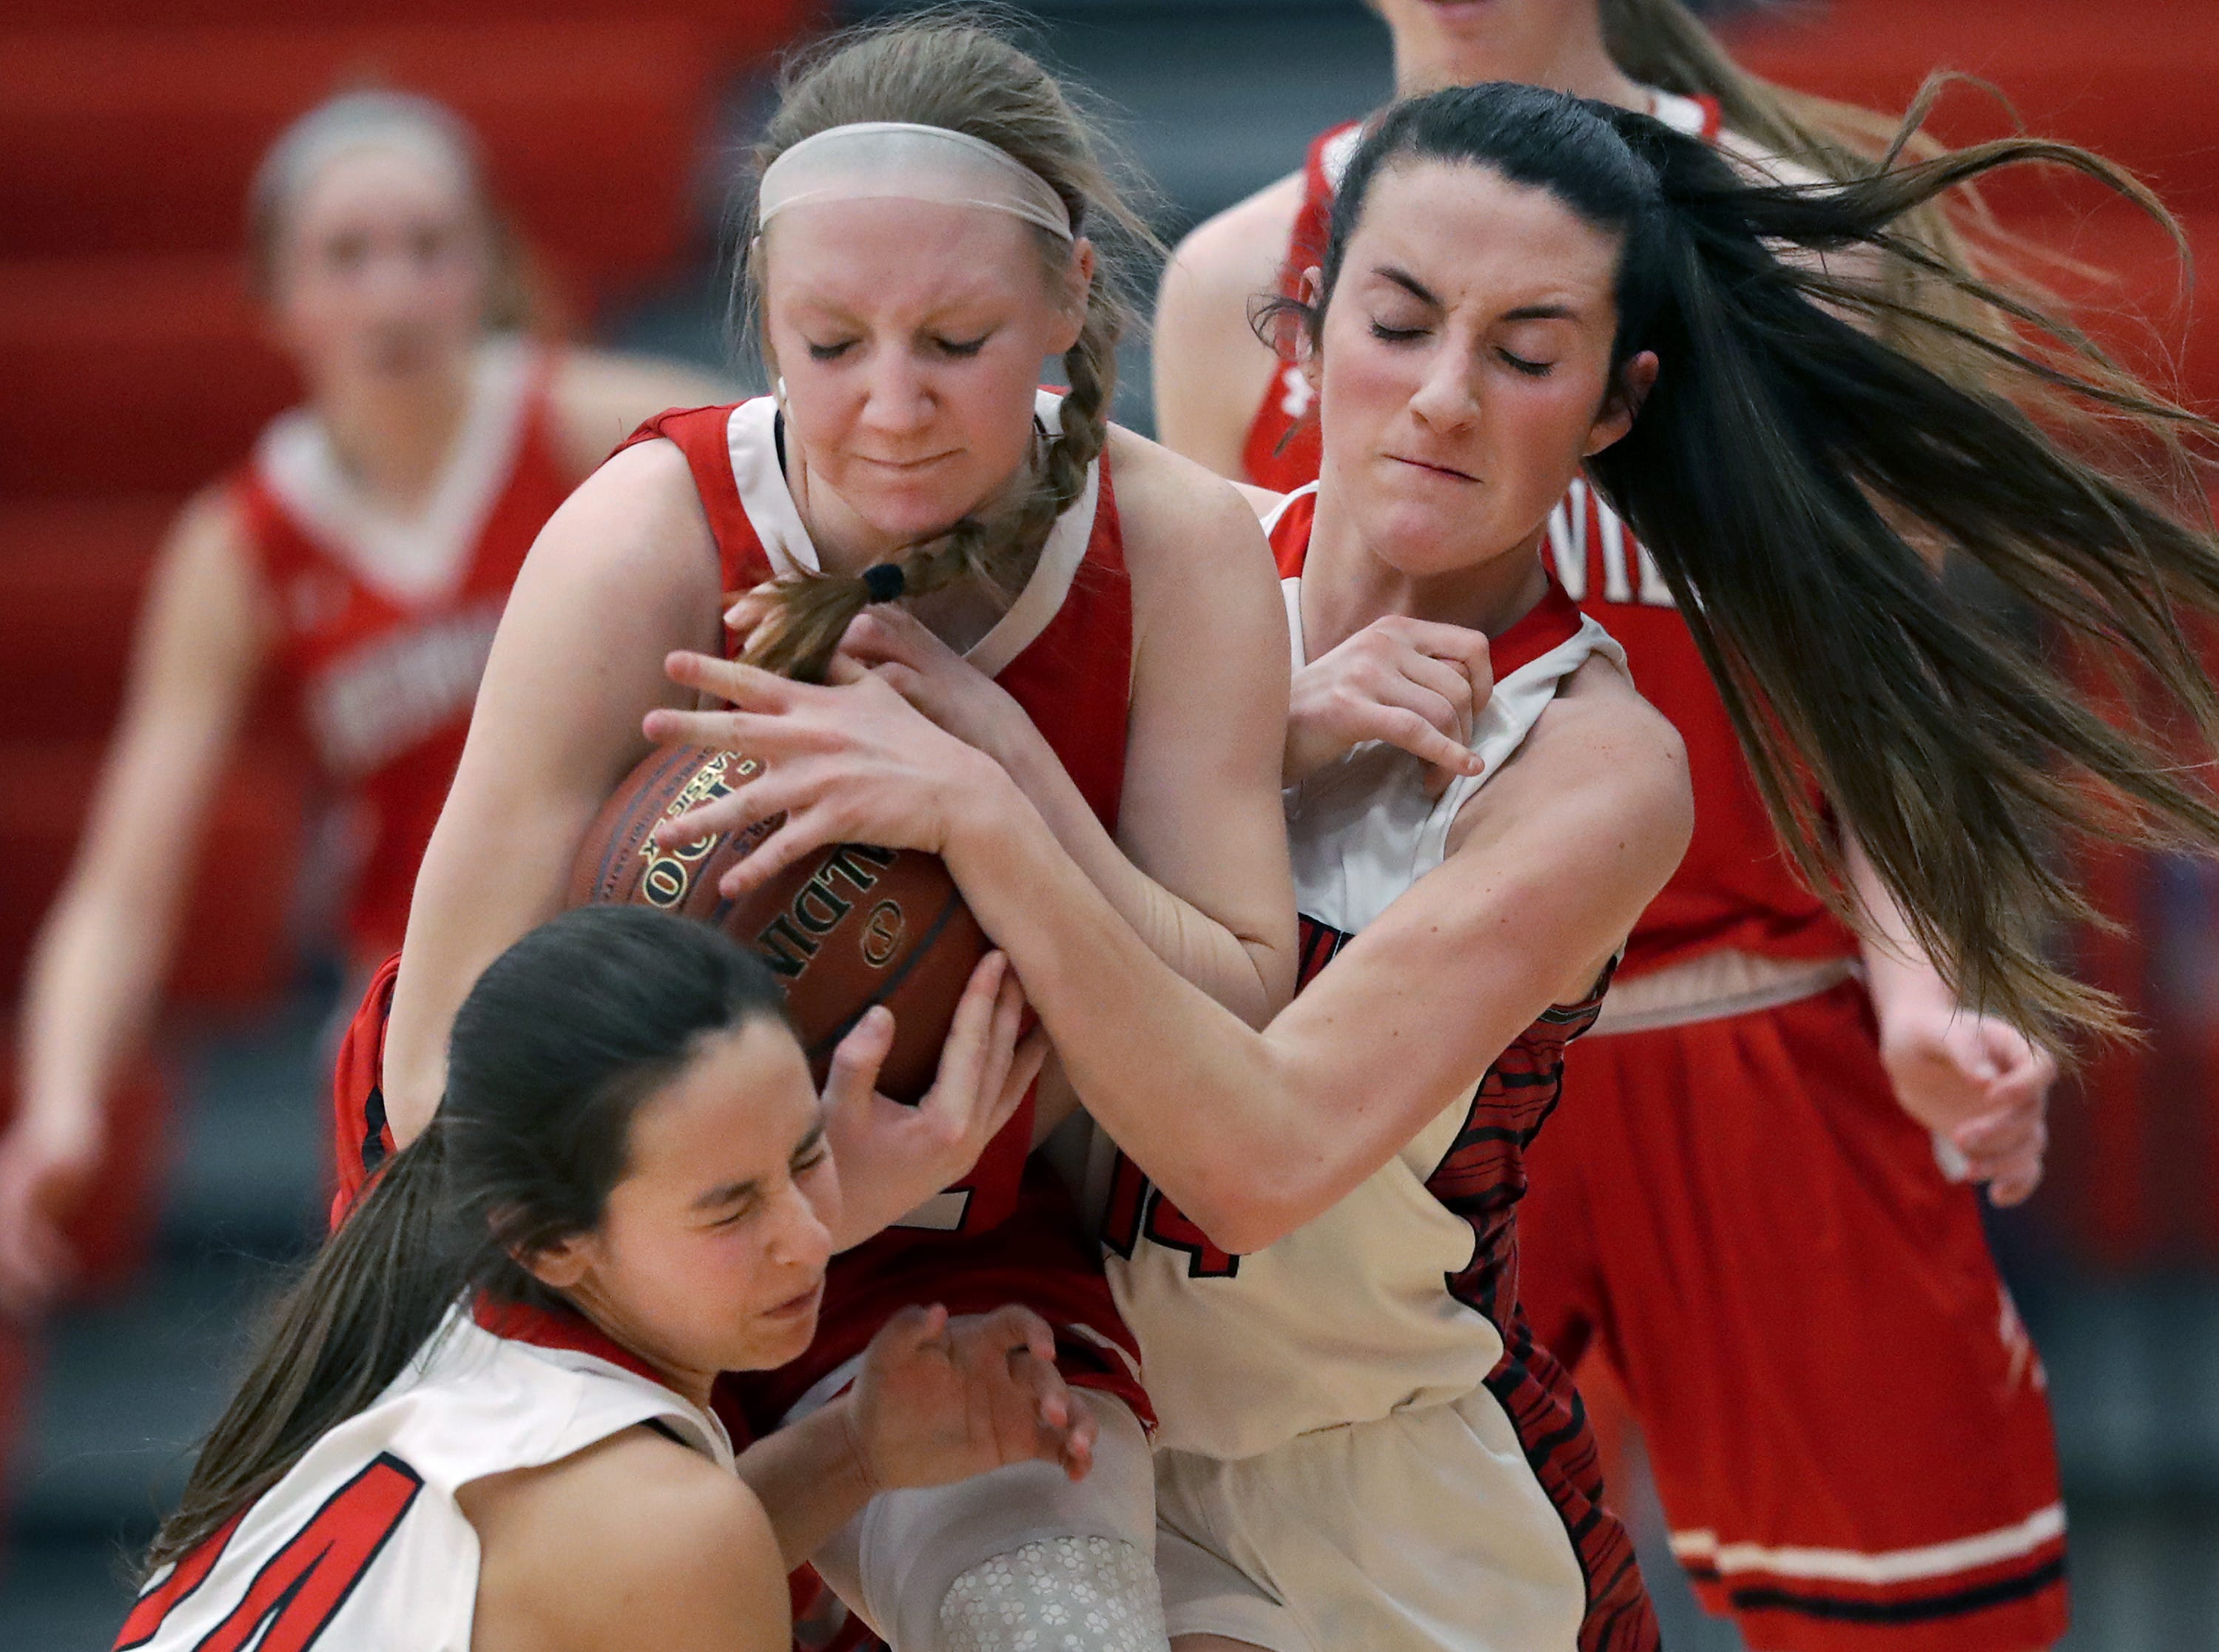 Hortonville High School's #12 Morgan Draheim against New London High School's #24 Samantha Pfefferle and #14 Mehgan Besaw during their WIAA Division 2 girls basketball sectional semifinal gameThursday, February 28, 2019, at Kimberly High School in Kimberly, Wis. Hortonville defeated New London 67 to 42.